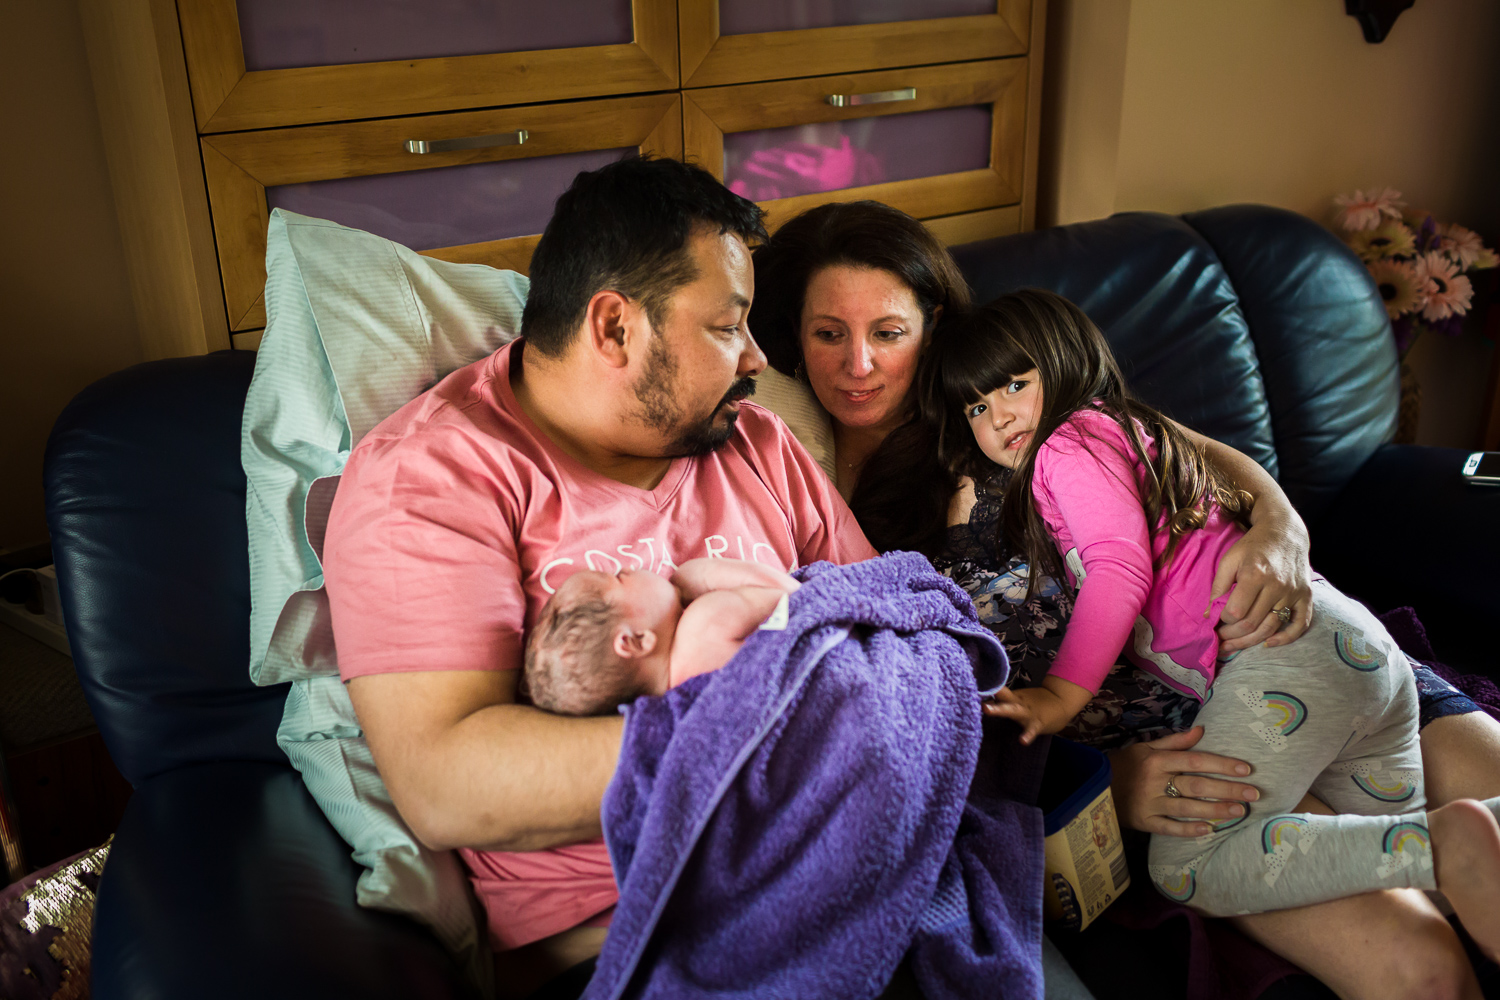 family enjoying some quiet moments after the birth of their newest member at home birth in Melbourne Victoria. Captured by A Grateful Heart Photography